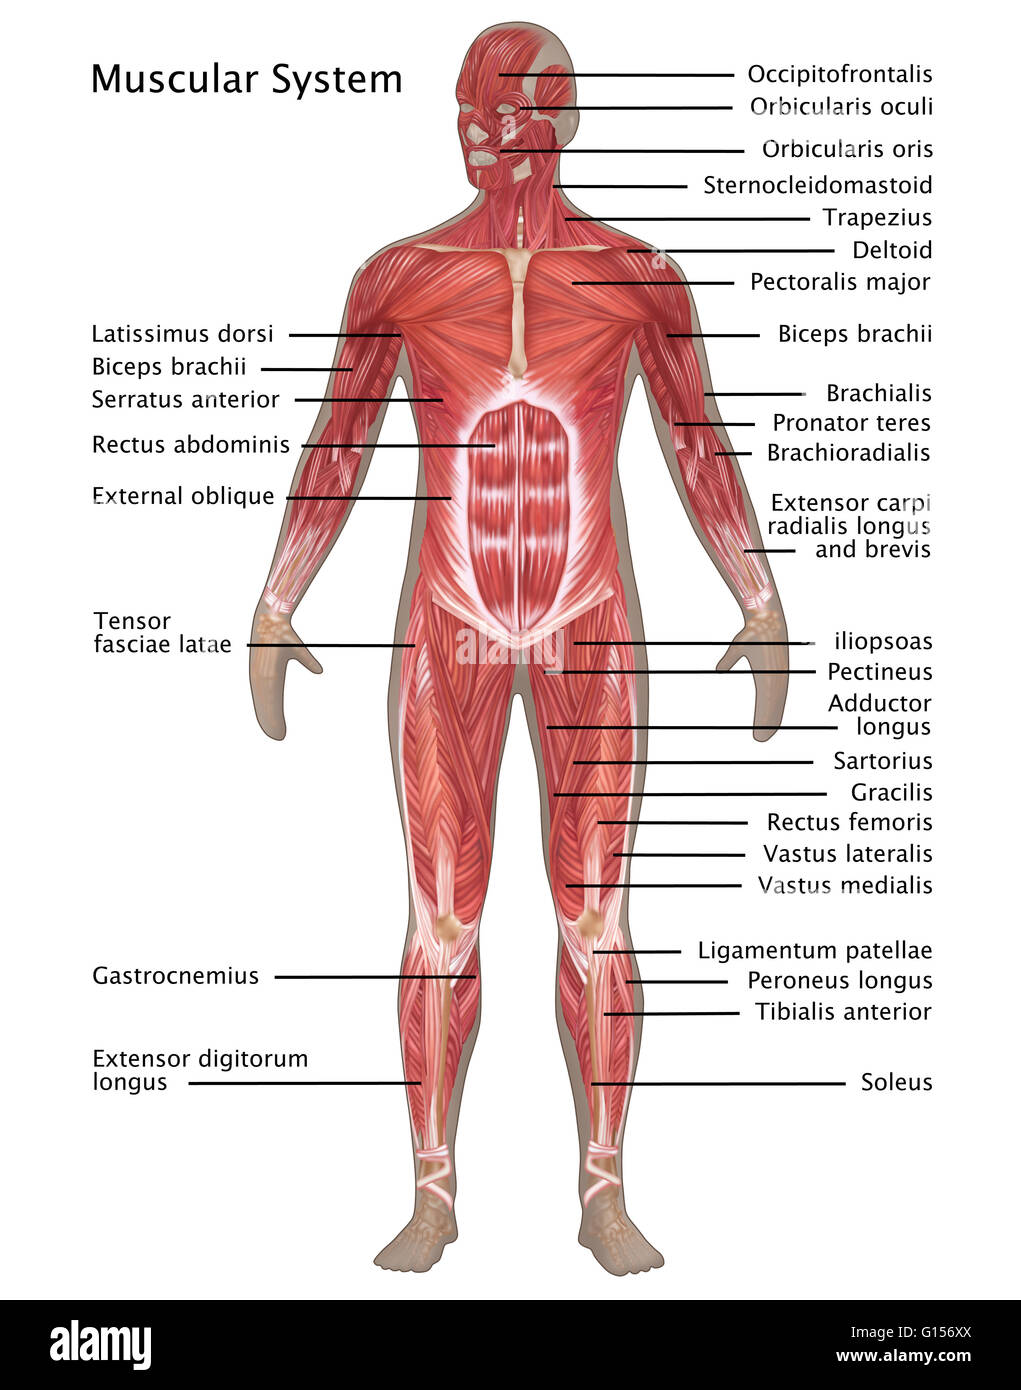 illustration of the muscular system in the male anatomy. labeled, Muscles